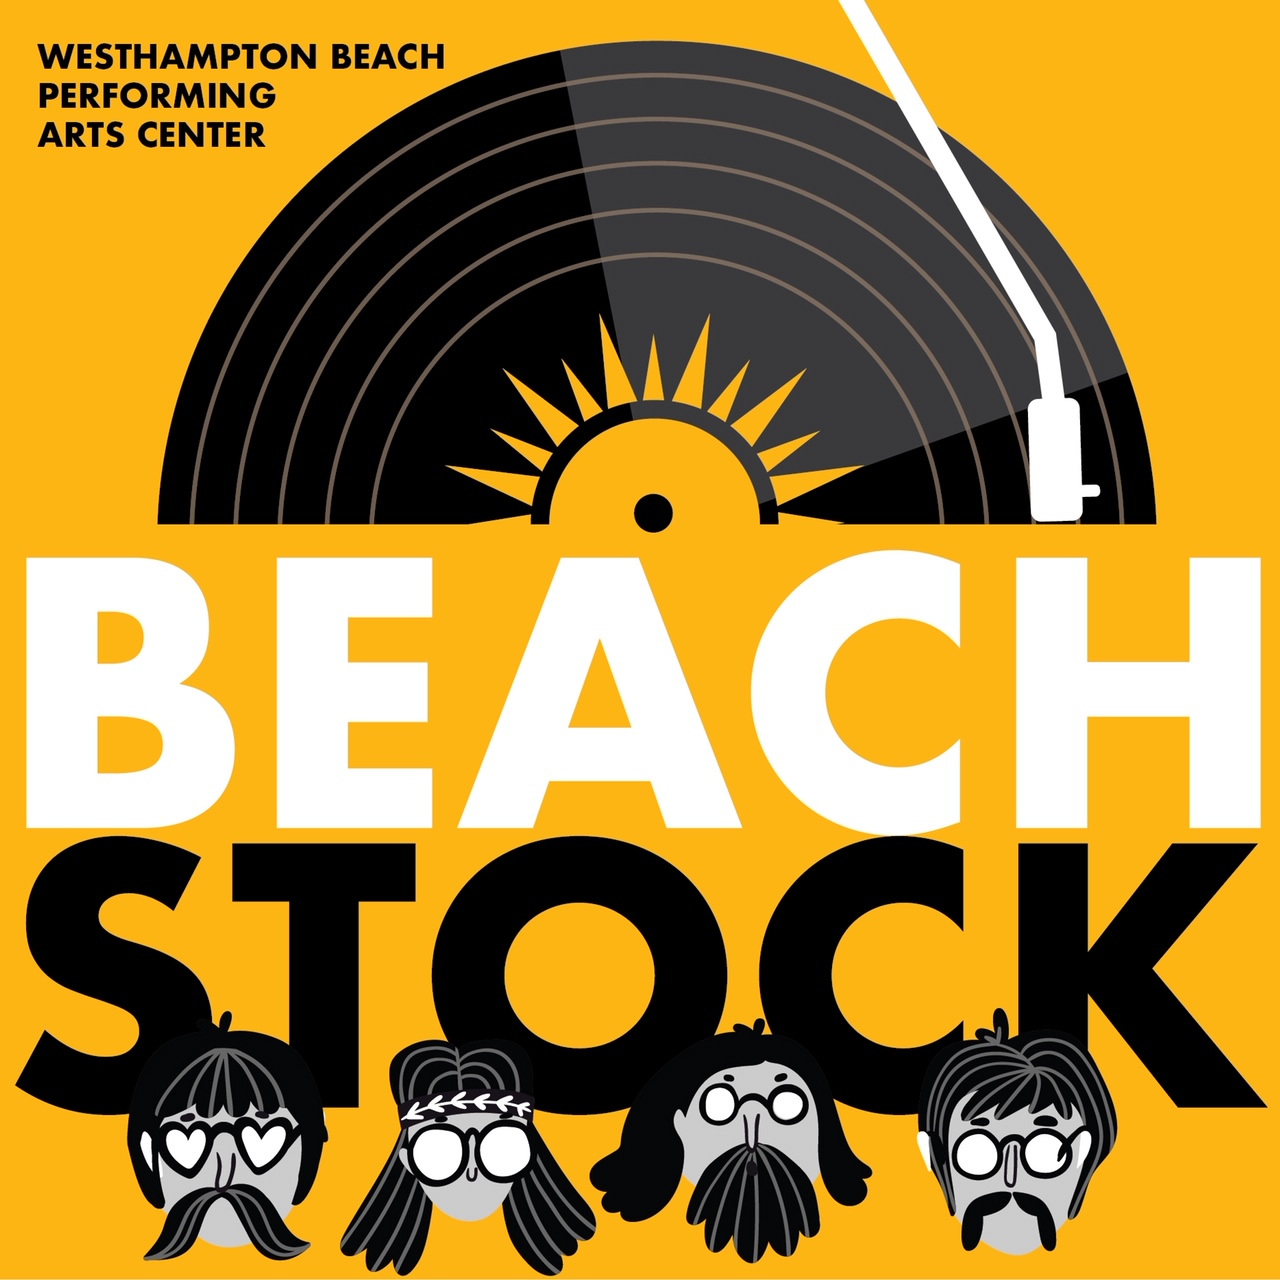 Beachstock: Square Feeet plays The Best of the Beatles, 1963-1973!